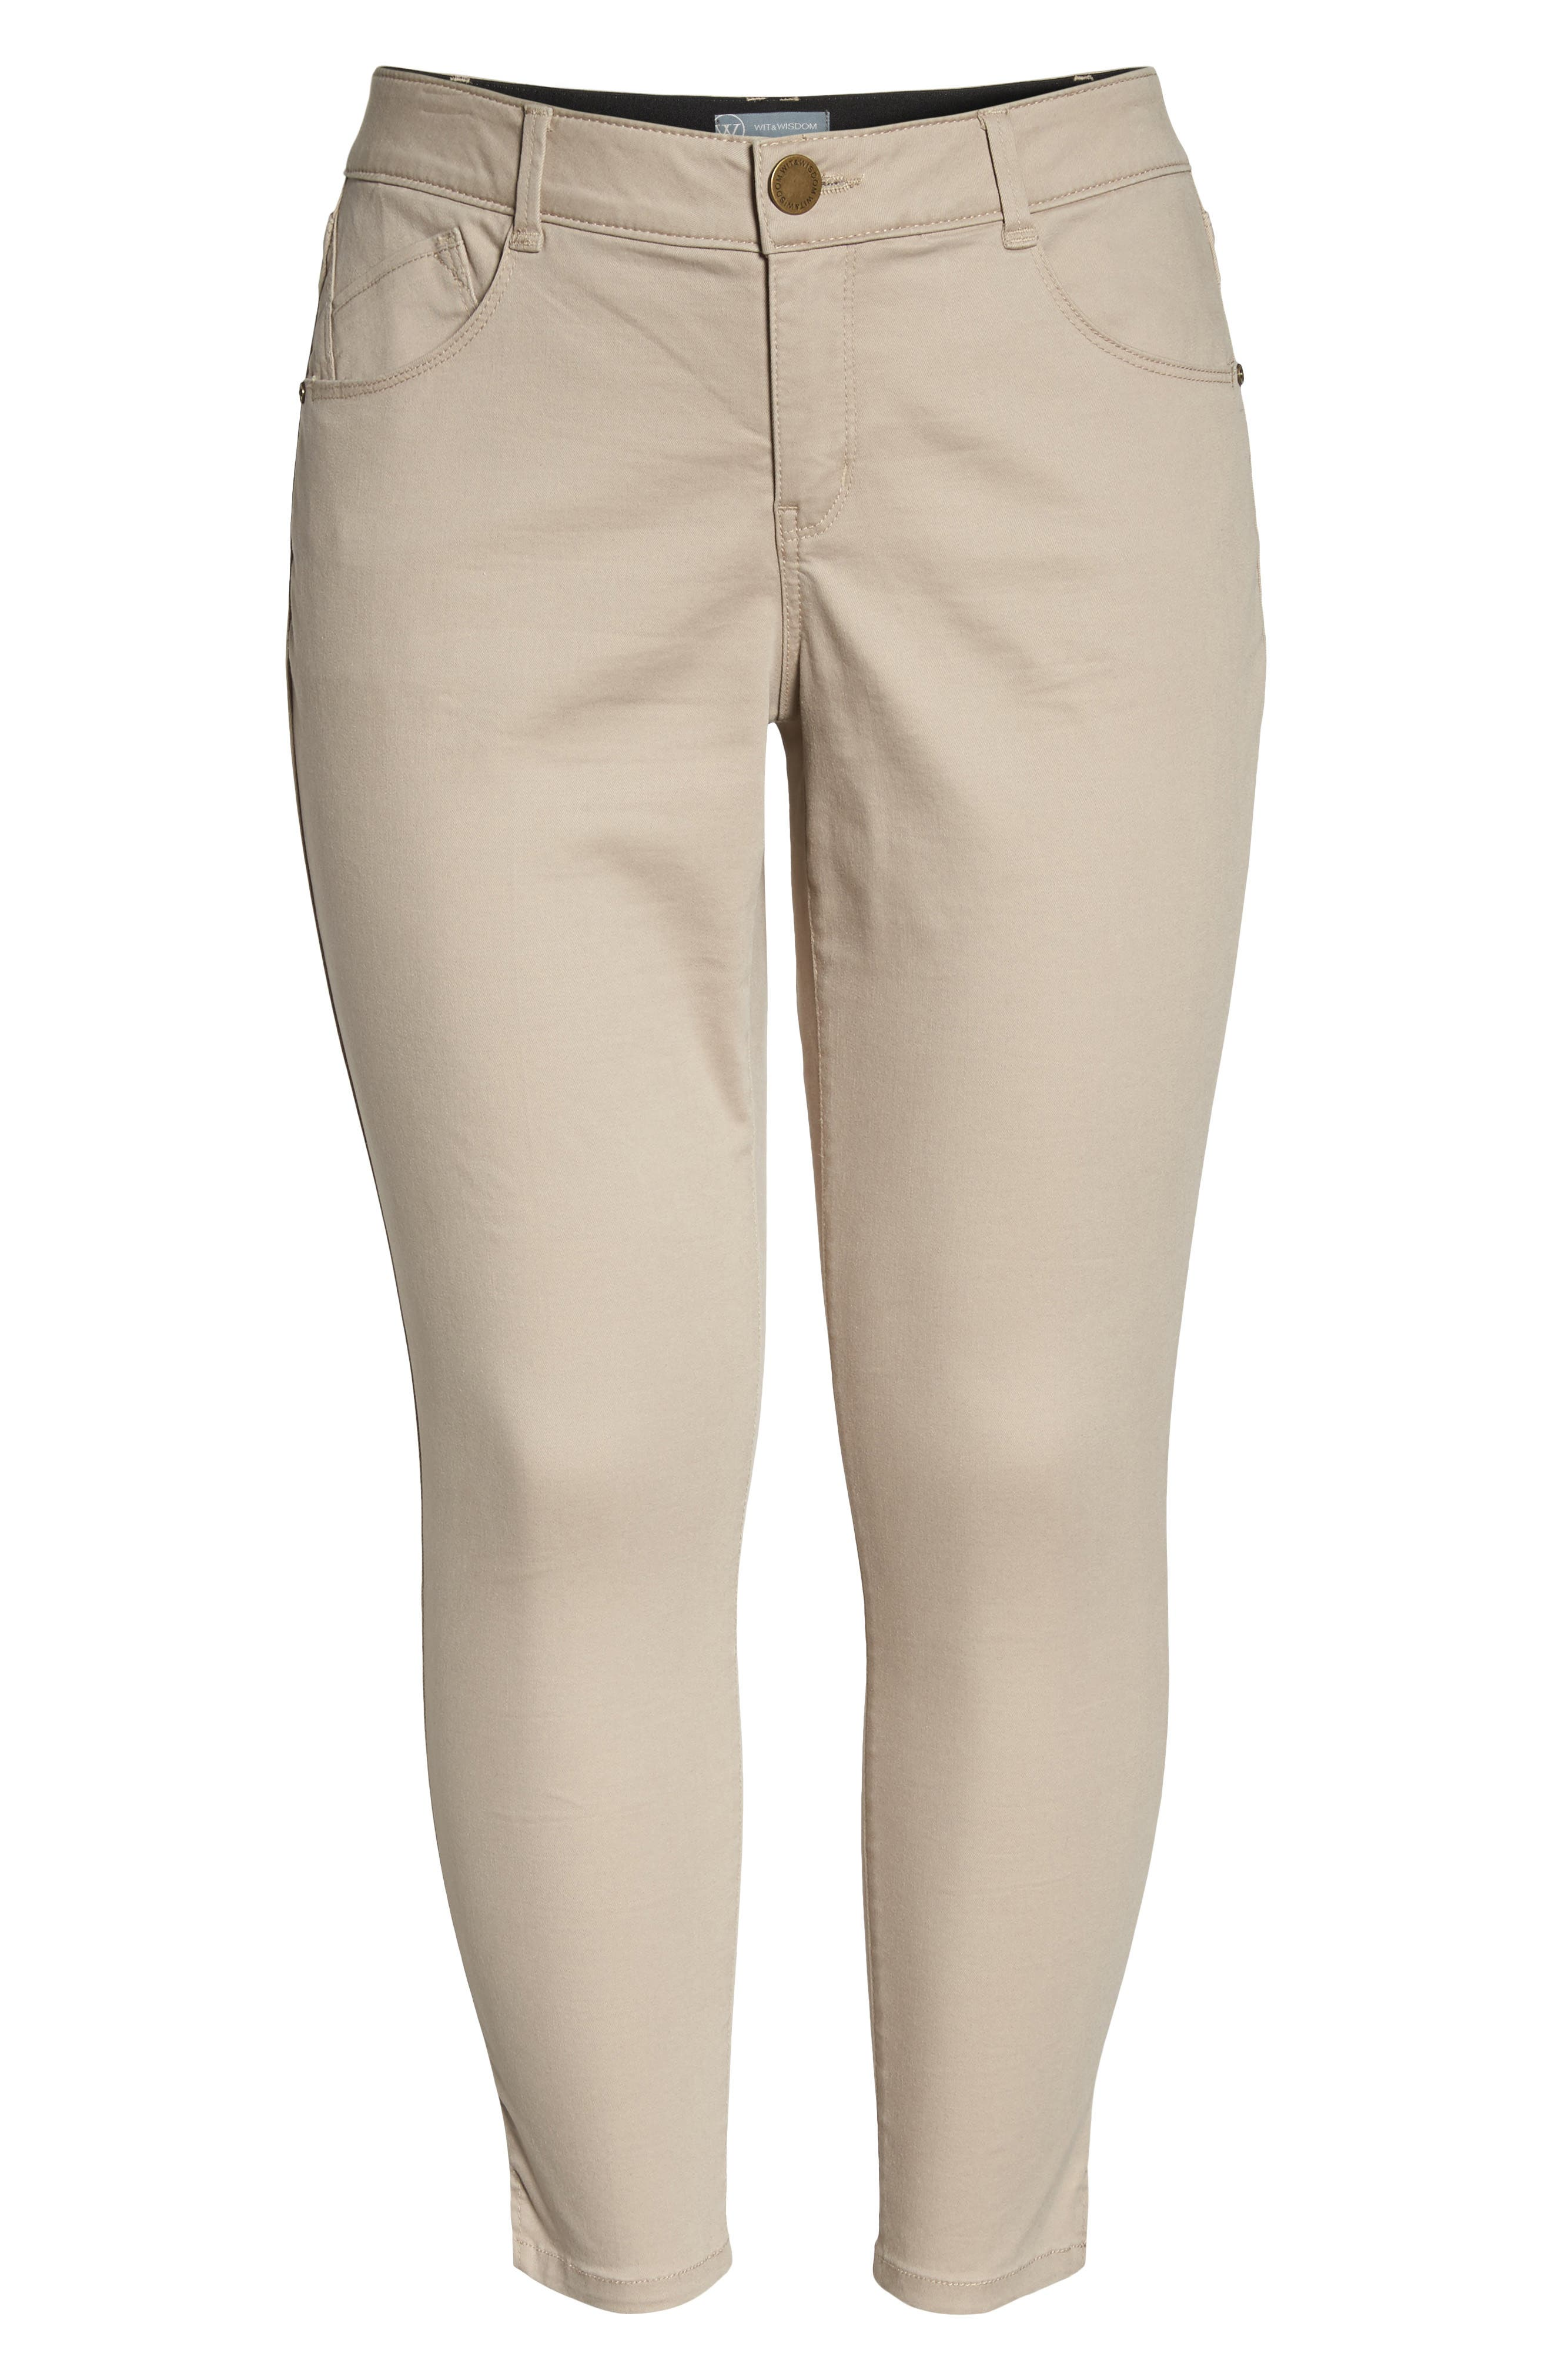 Ab-solution Ankle Pants,                             Alternate thumbnail 7, color,                             Flax